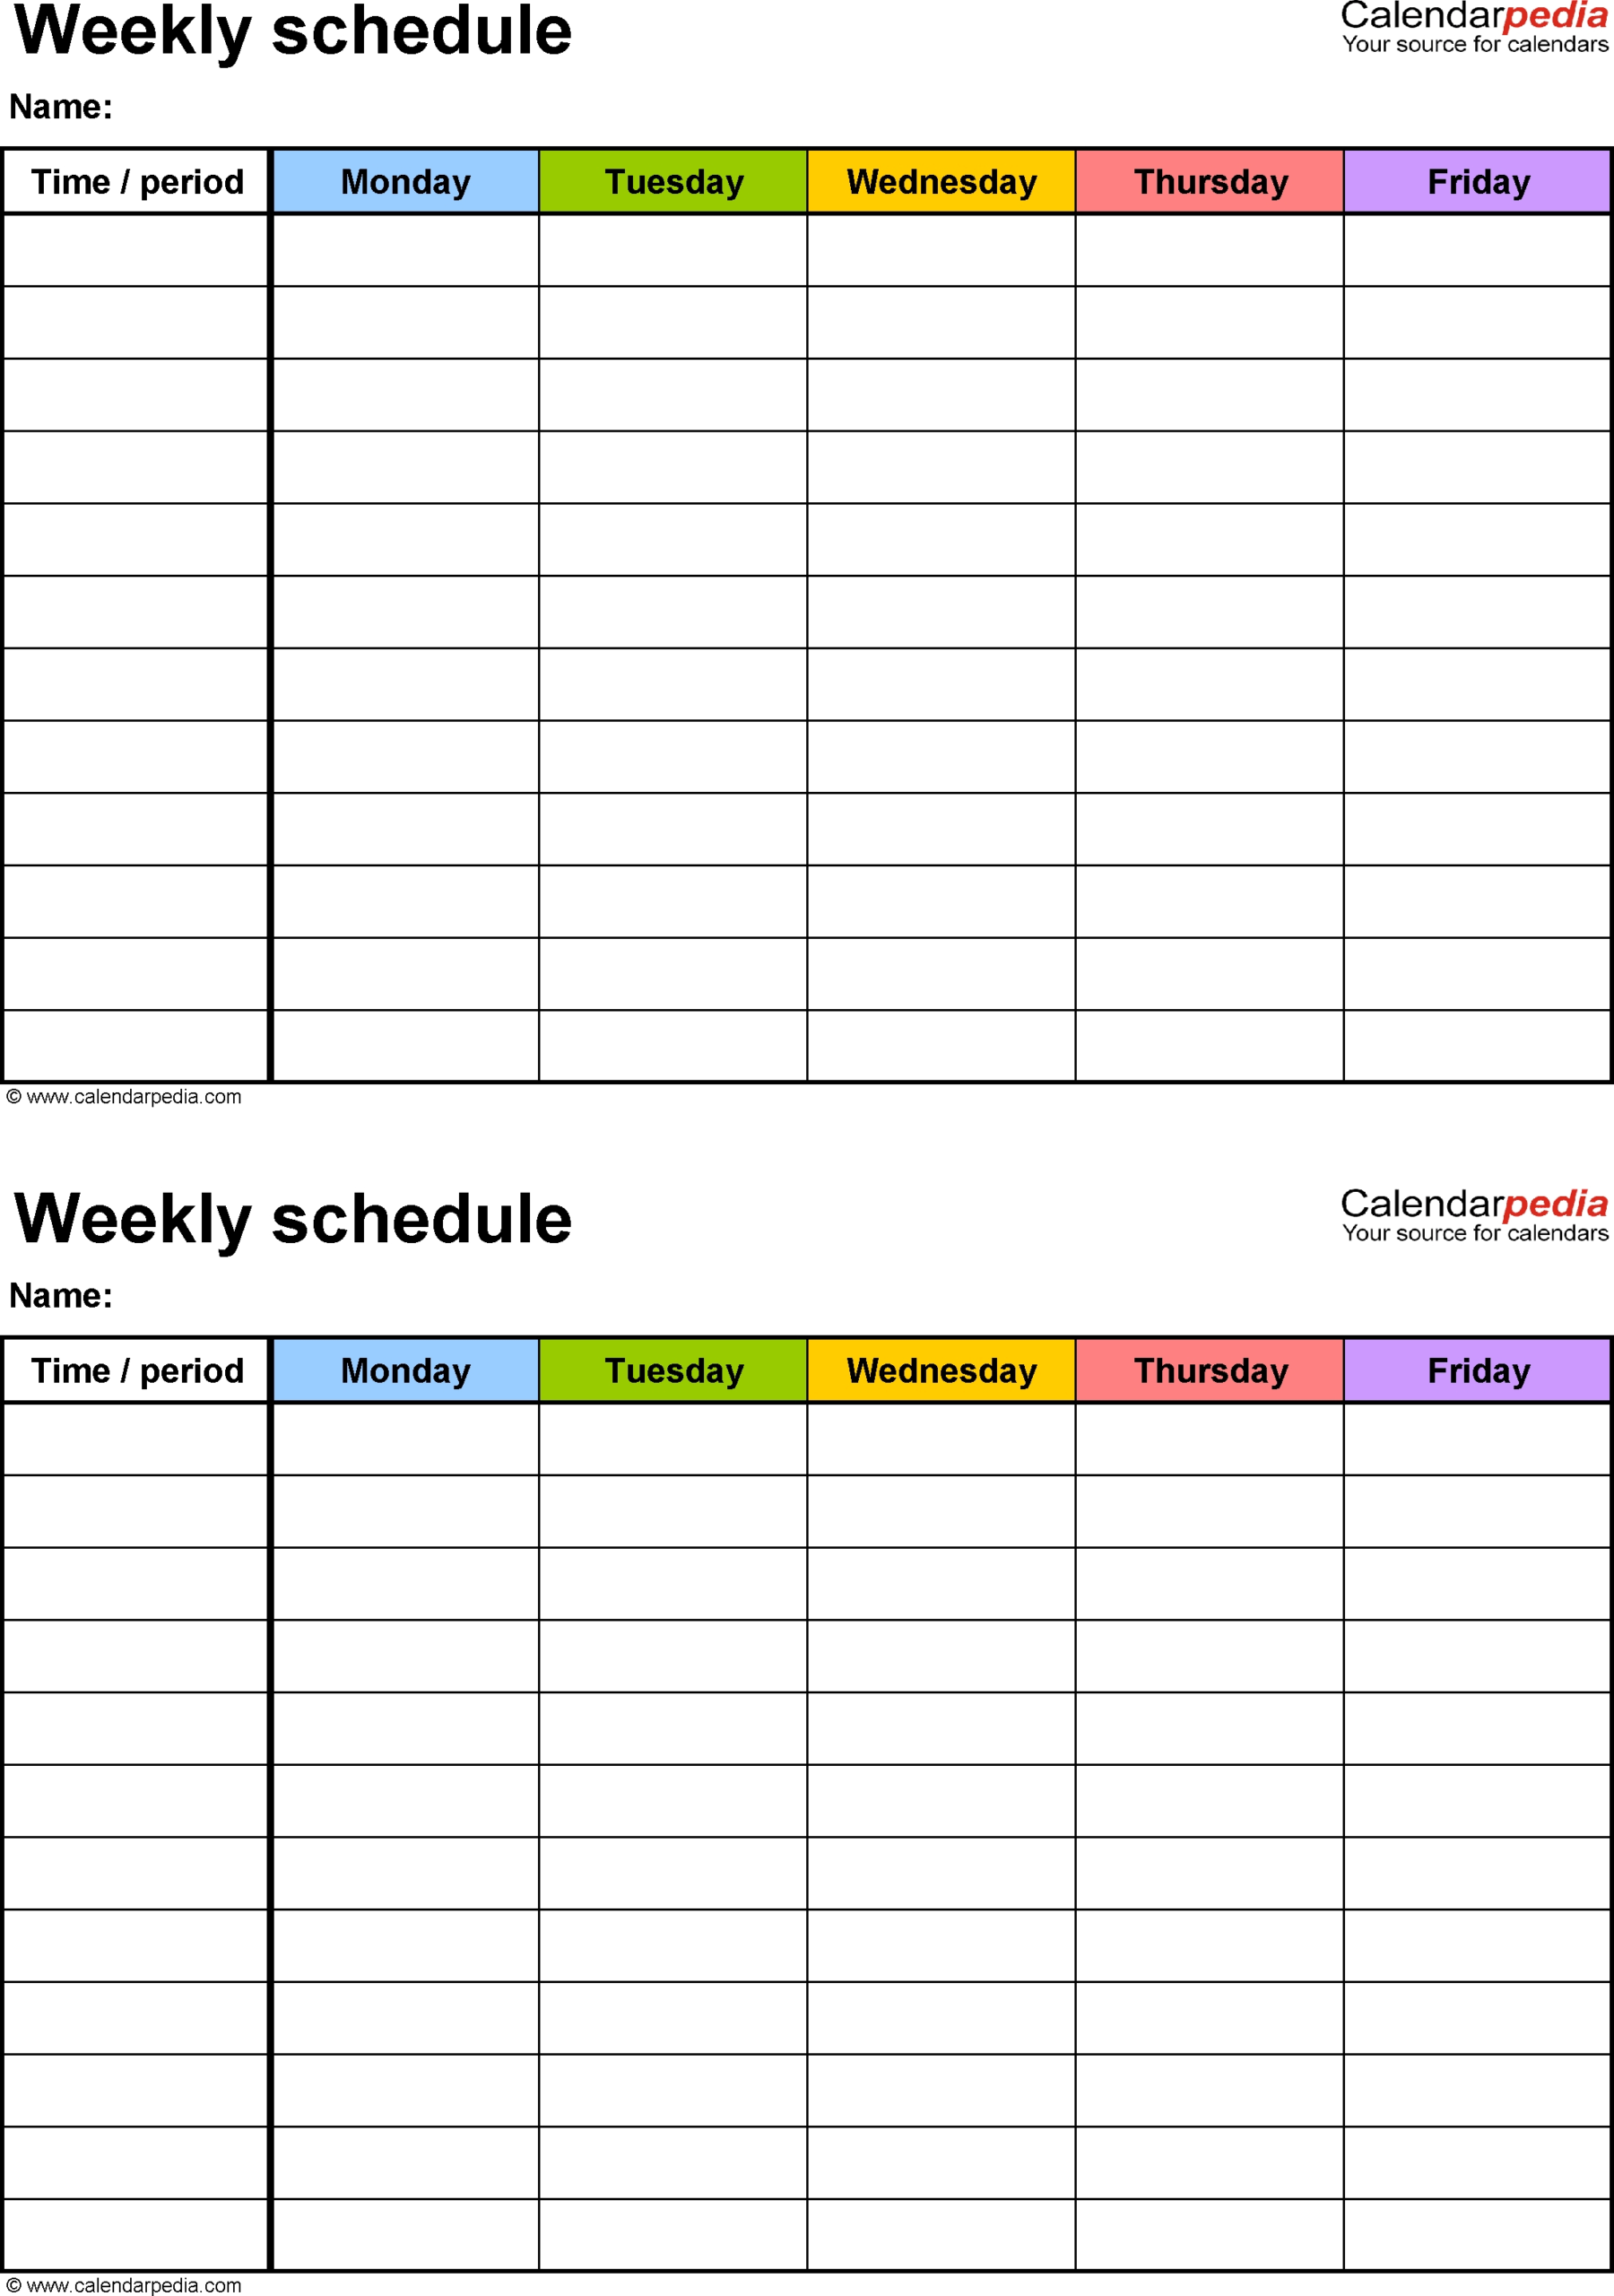 Monday To Friday Monthly Calendar Template | Calendar  Editable Monday-Friday Shedule